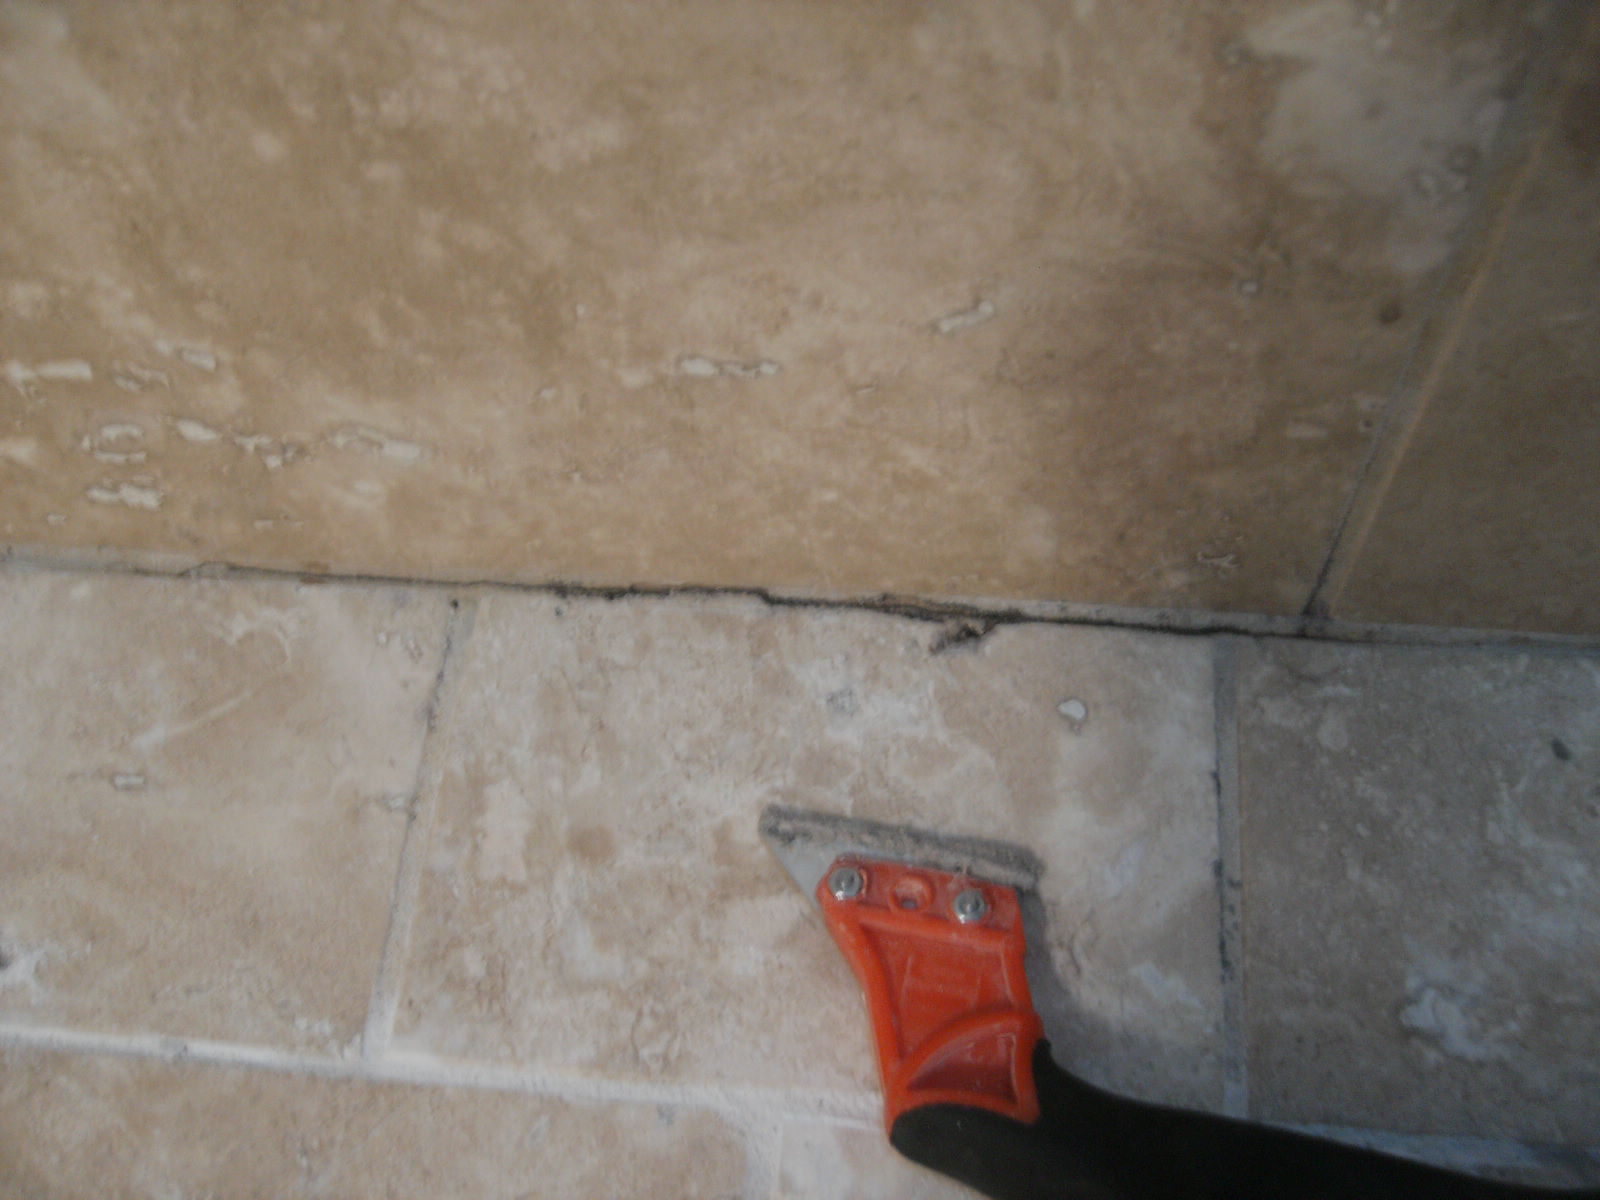 How to clean and maintain tile grout confessions of a tile setter how to clean and maintain tile grout dailygadgetfo Images